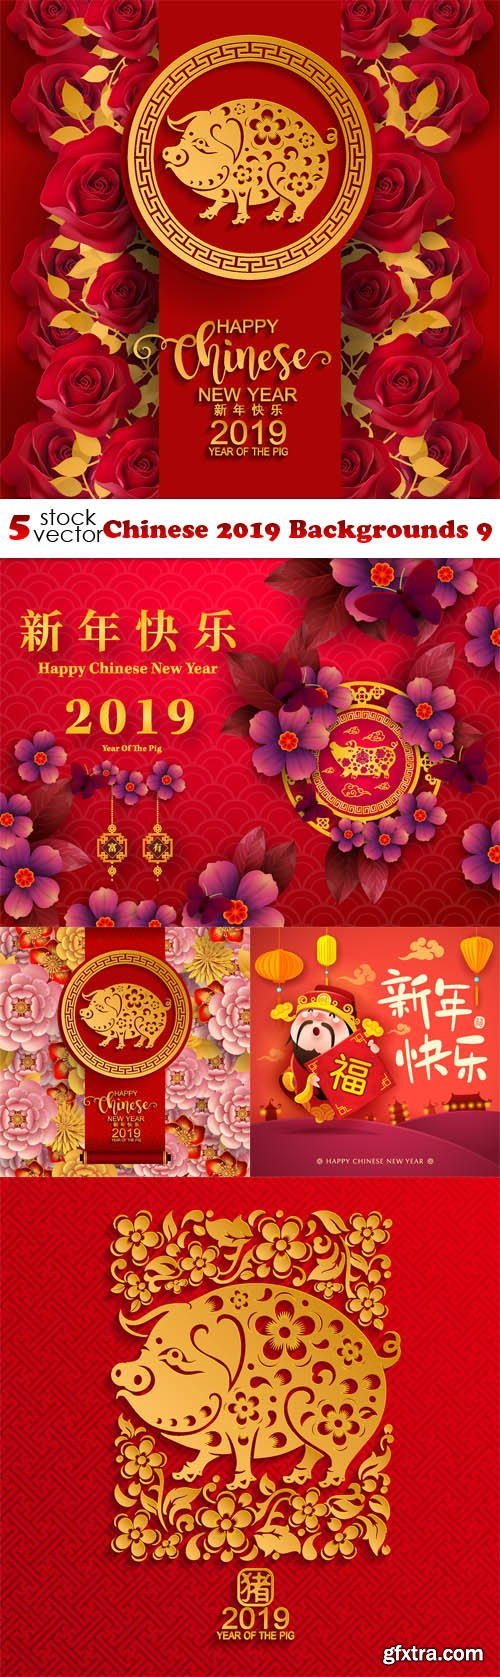 Vectors - Chinese 2019 Backgrounds 9